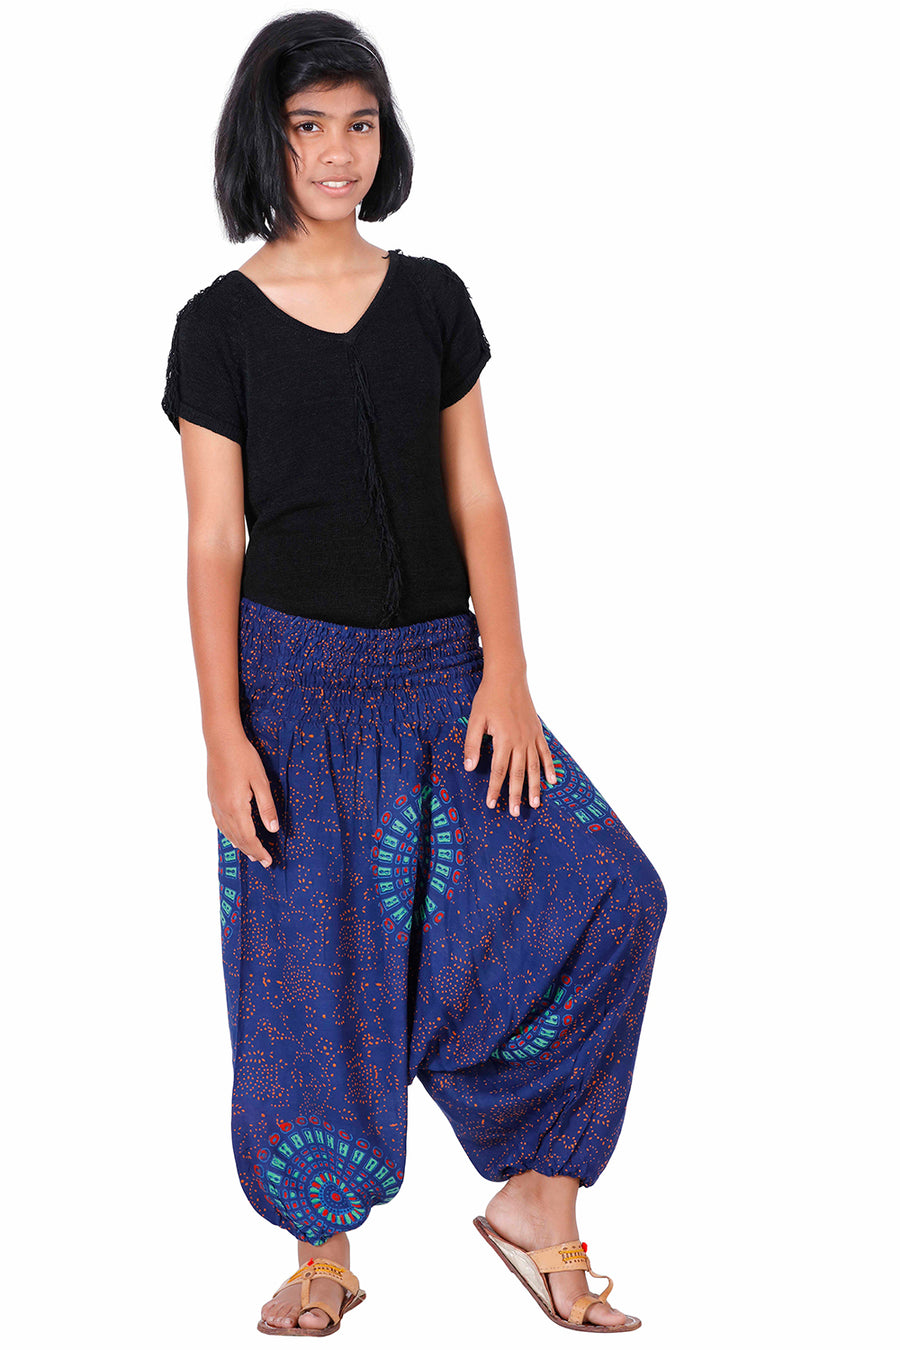 Kids Harem Pants, Kids Parachute Pants, Blue Harem Pants for kids, mc hammer pants for kids, slouch pants kids, cotton harem pants kids, kids harem sweatpants,kids drop crotch pants, boys harem pants, girls harem pants, harem pants for kids boys,boys pants, girls harem pants, parachute pants girls, parachute pants boys